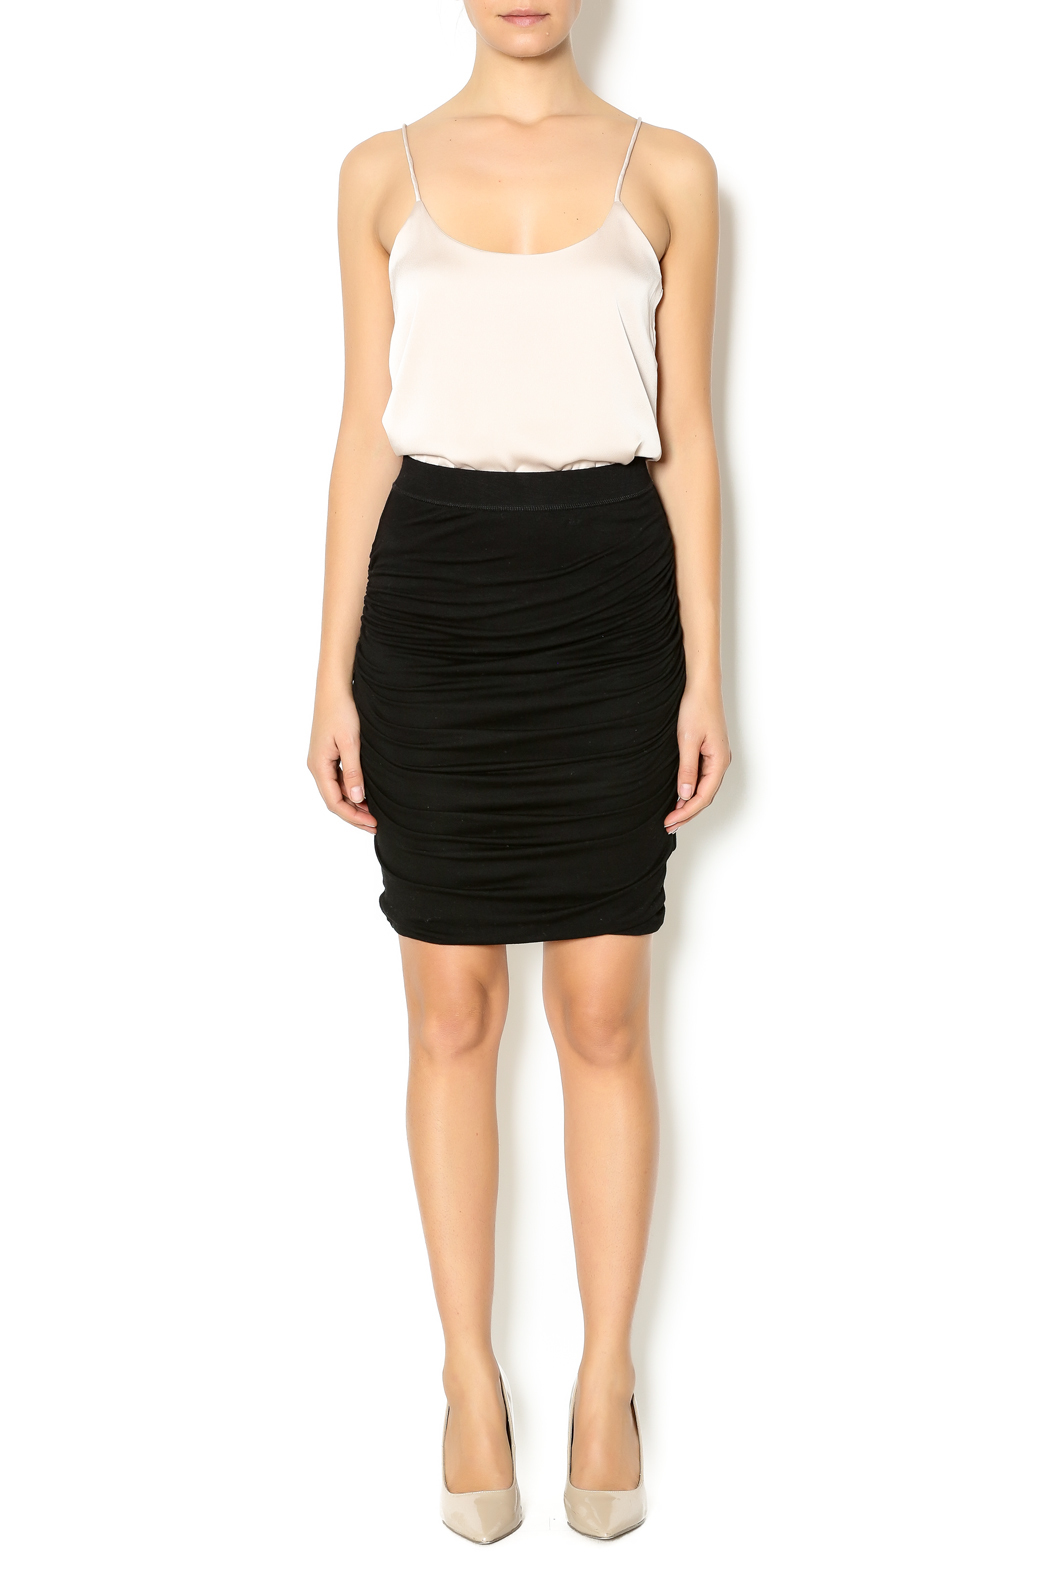 Bishop + Young Black Ruched Skirt - Front Full Image